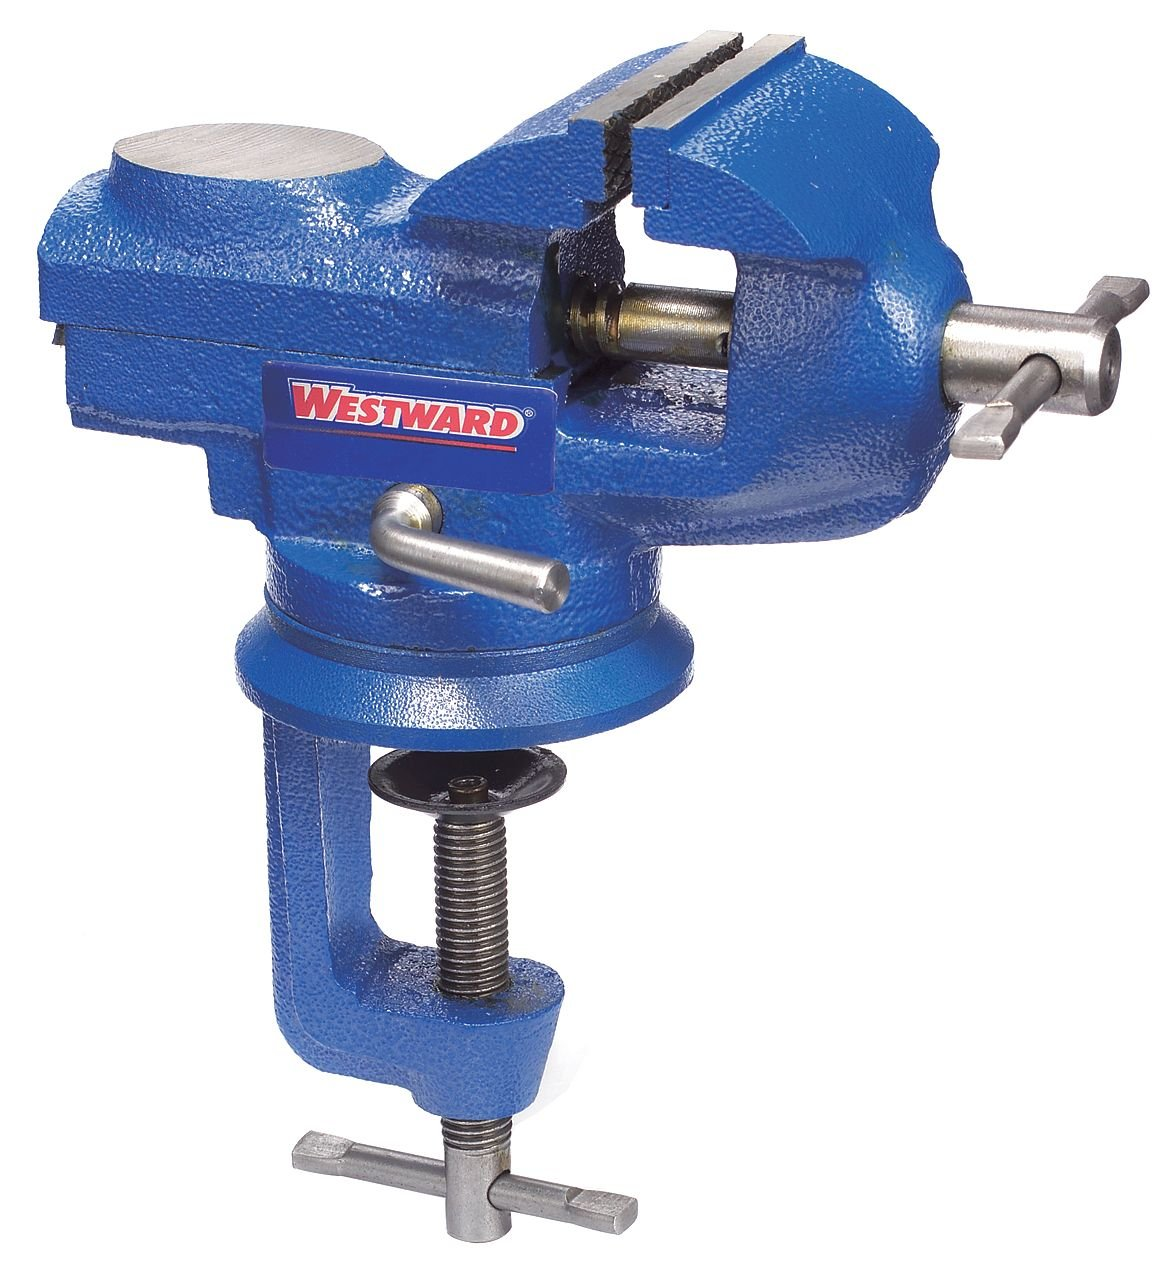 Westward, 10D697, Bench Vise, Portable Clamp, Swivel, 2-3/8In